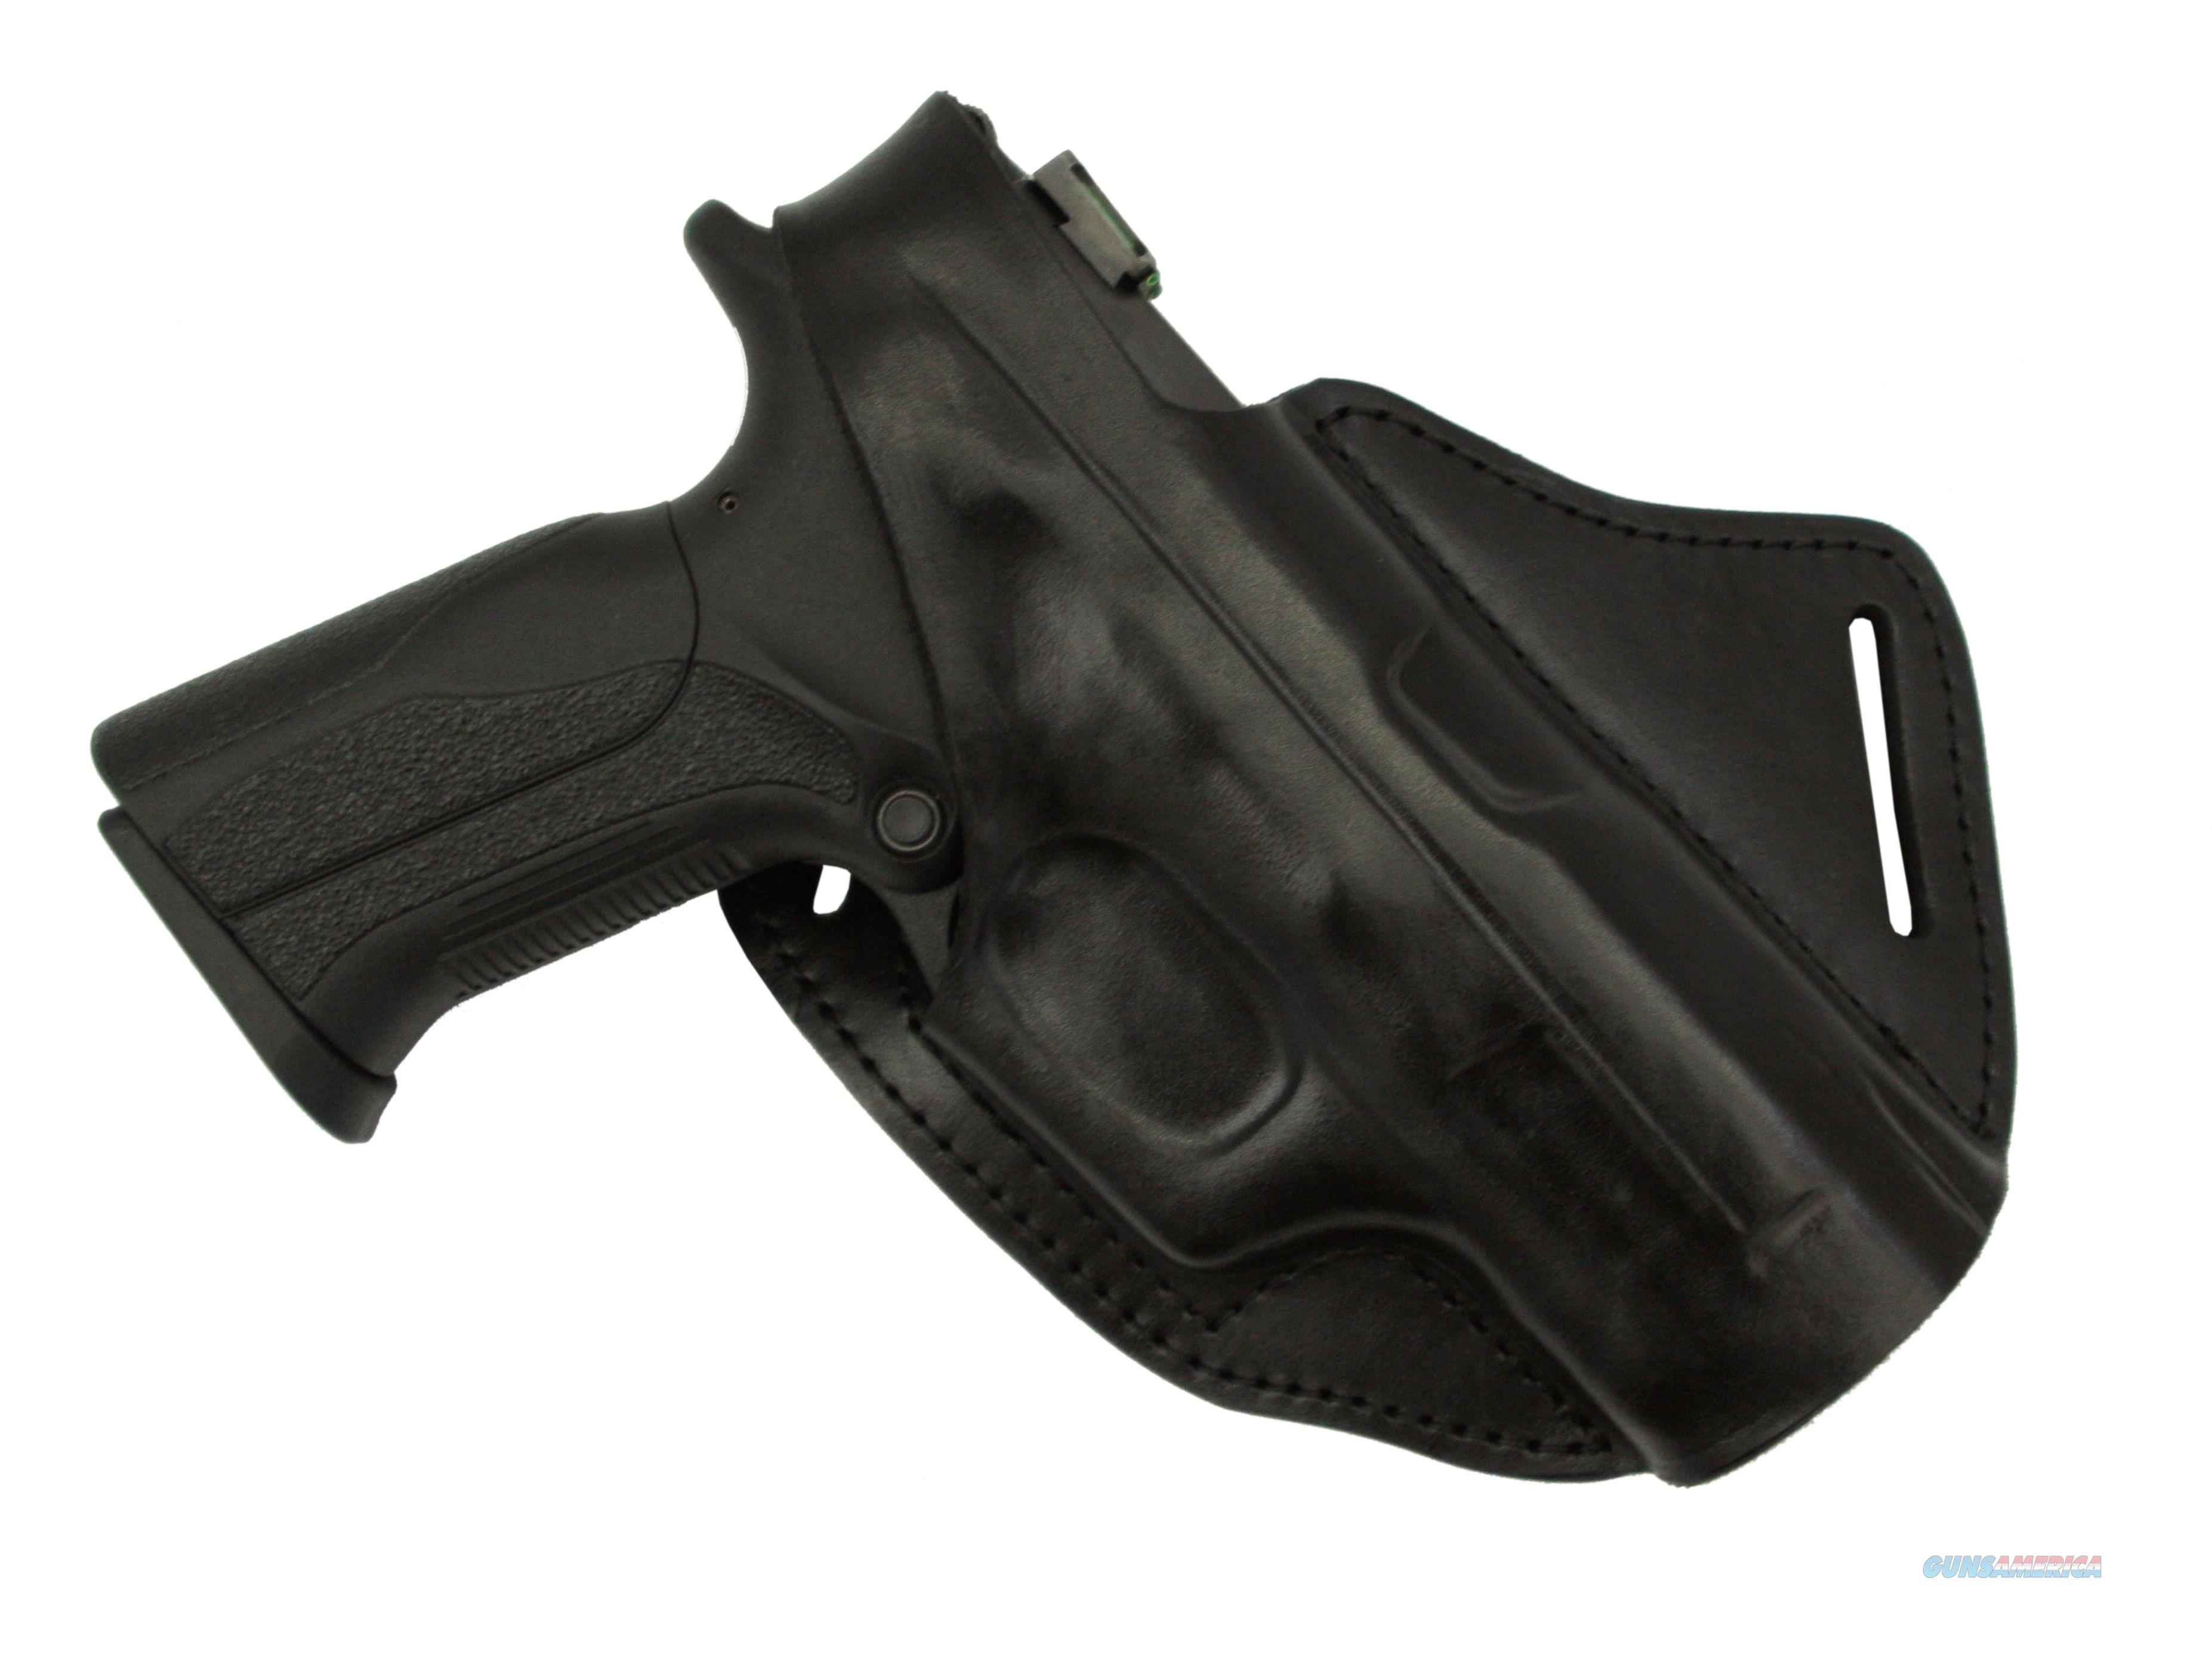 Cross Draw Leather Belt Holster  CZ 75D Compact  Non-Guns > Holsters and Gunleather > Concealed Carry